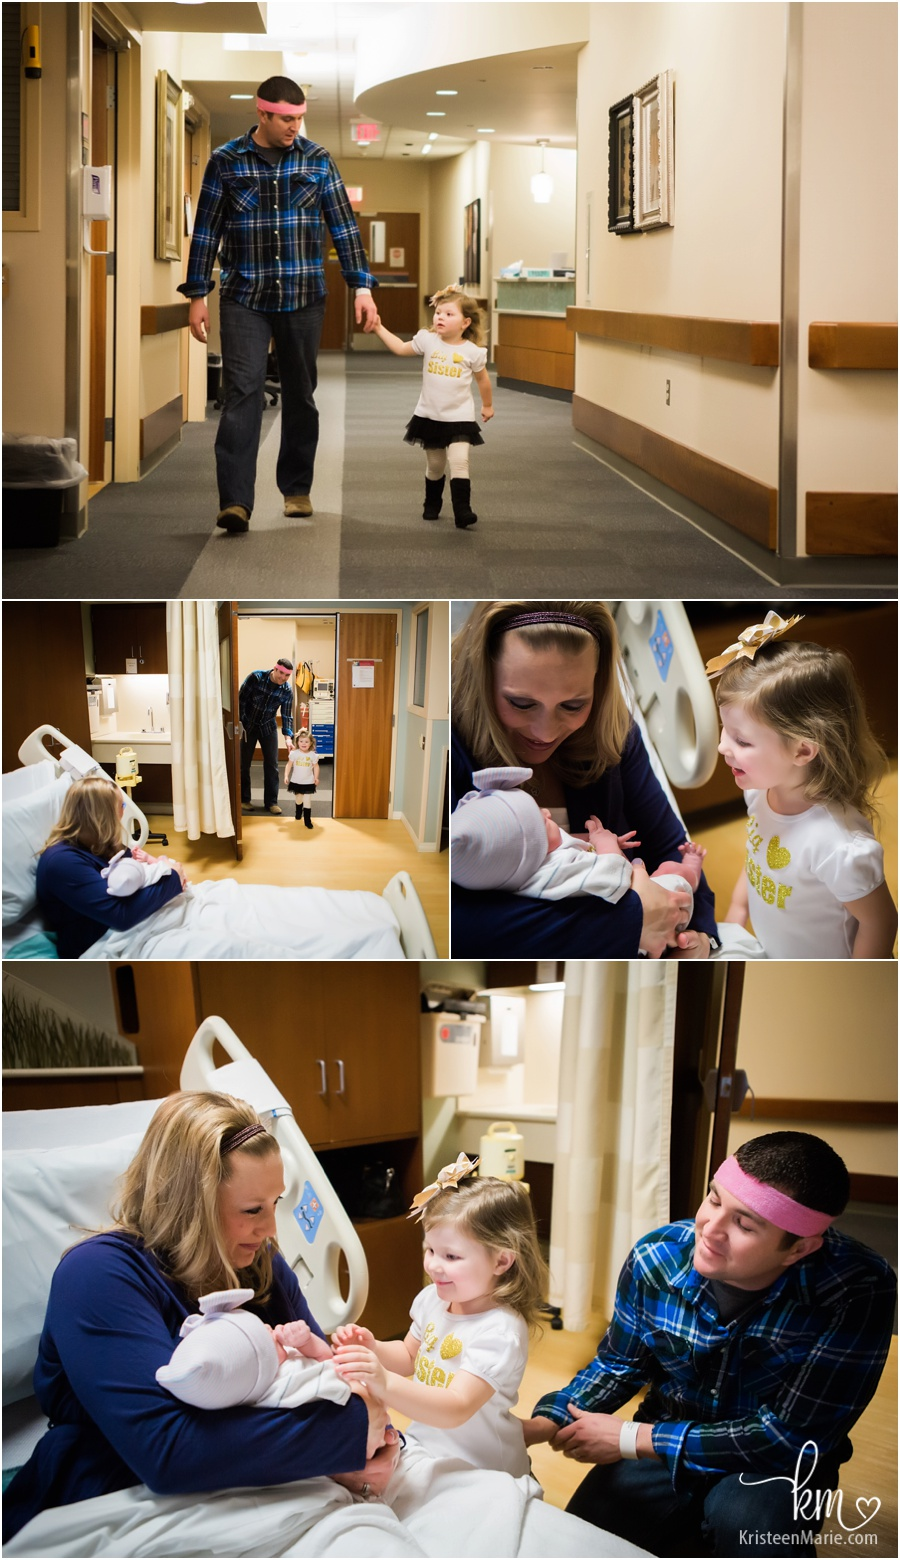 Sisters meeting for the first time in the hospital - Fresh 48 - priceless images!